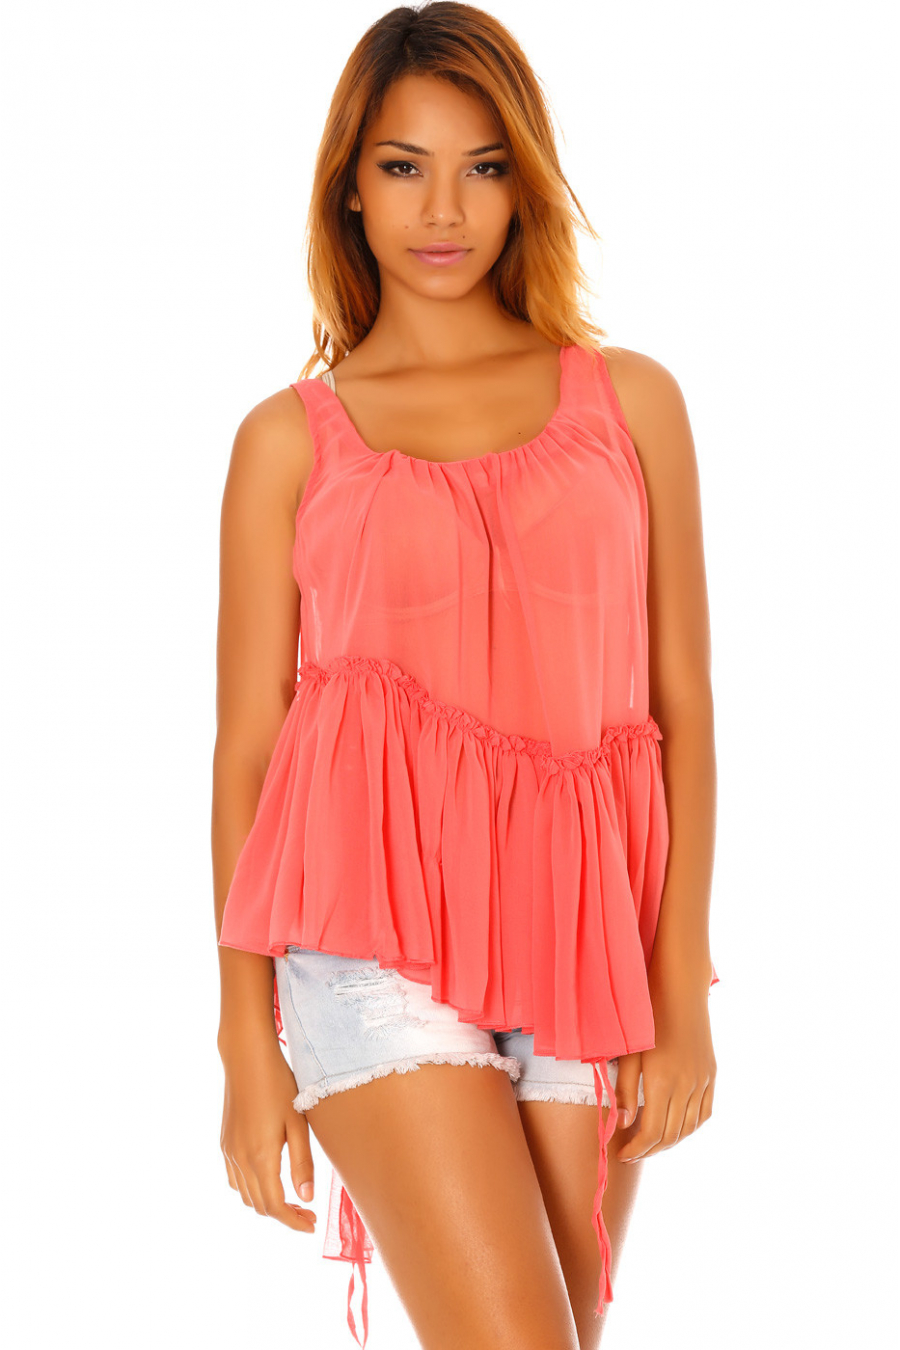 Transparent and asymmetric flowing fuchsia top with ruffles. 1102